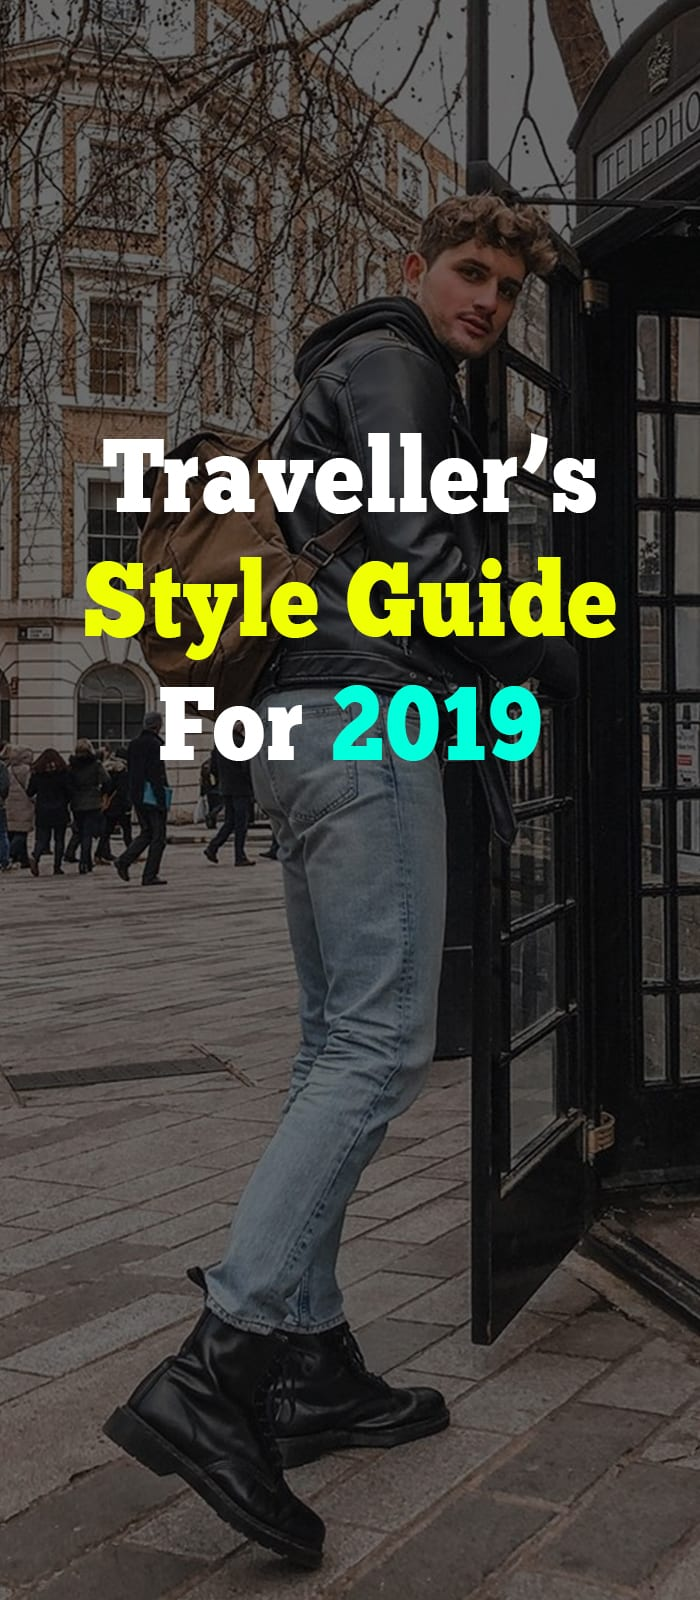 Jacket and boot ideas to wear while travelling!